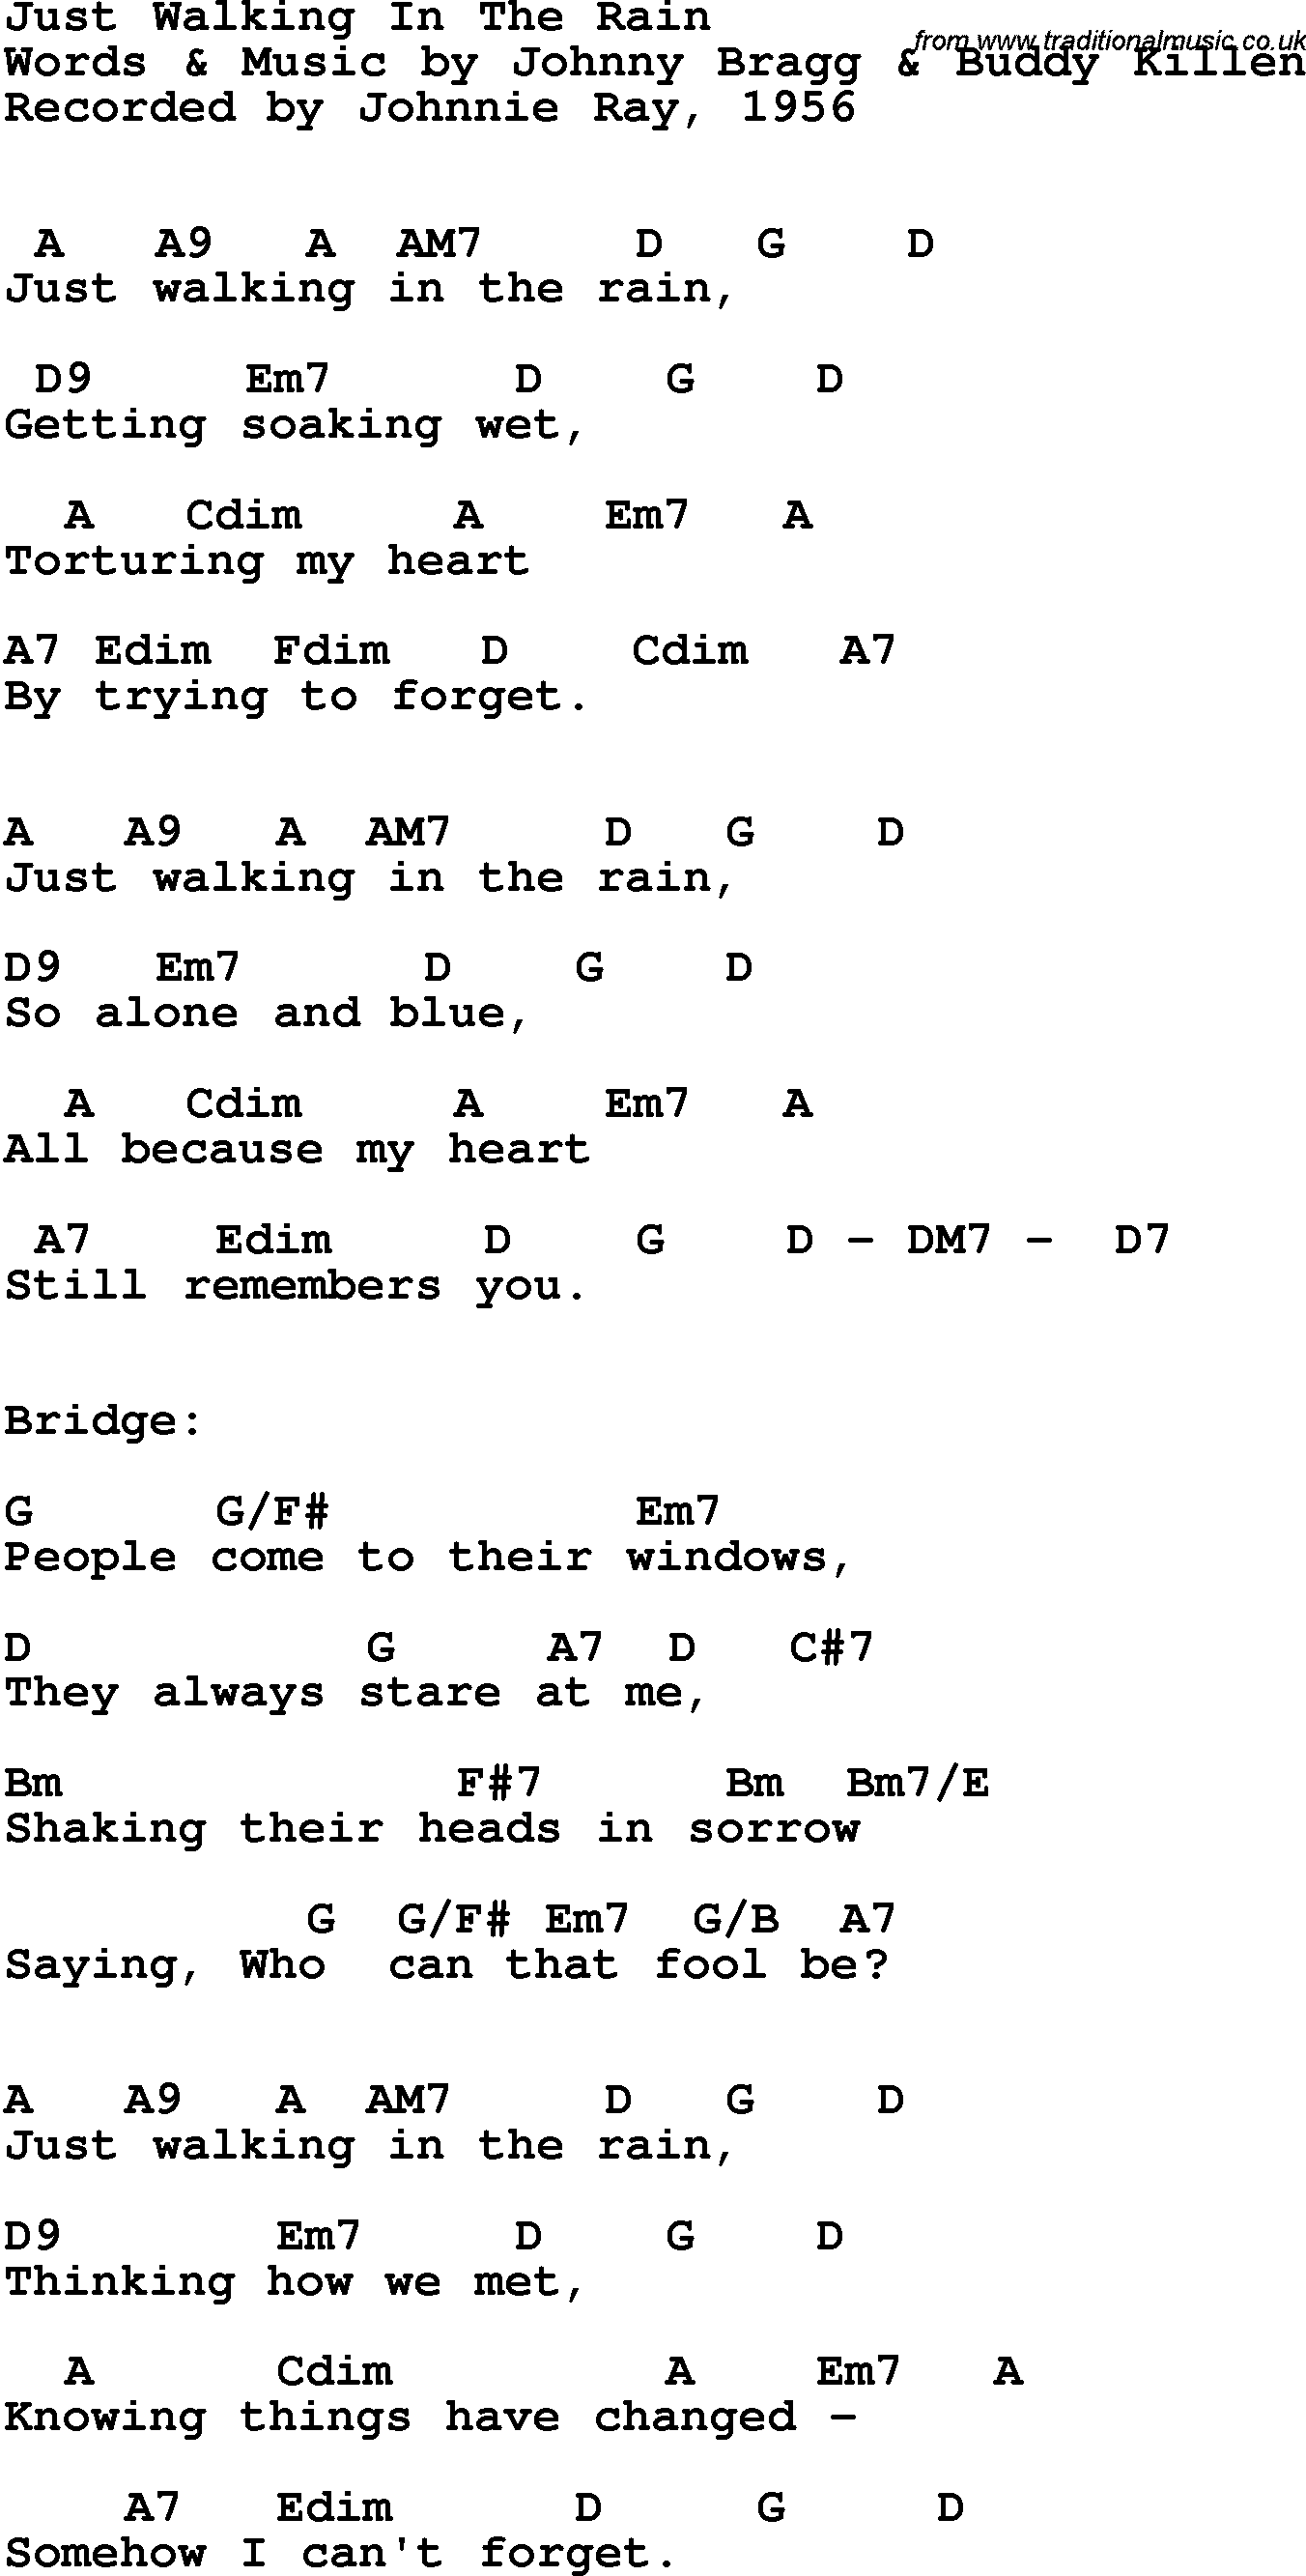 Song Lyrics With Guitar Chords For Just Walking In The Rain Johnny